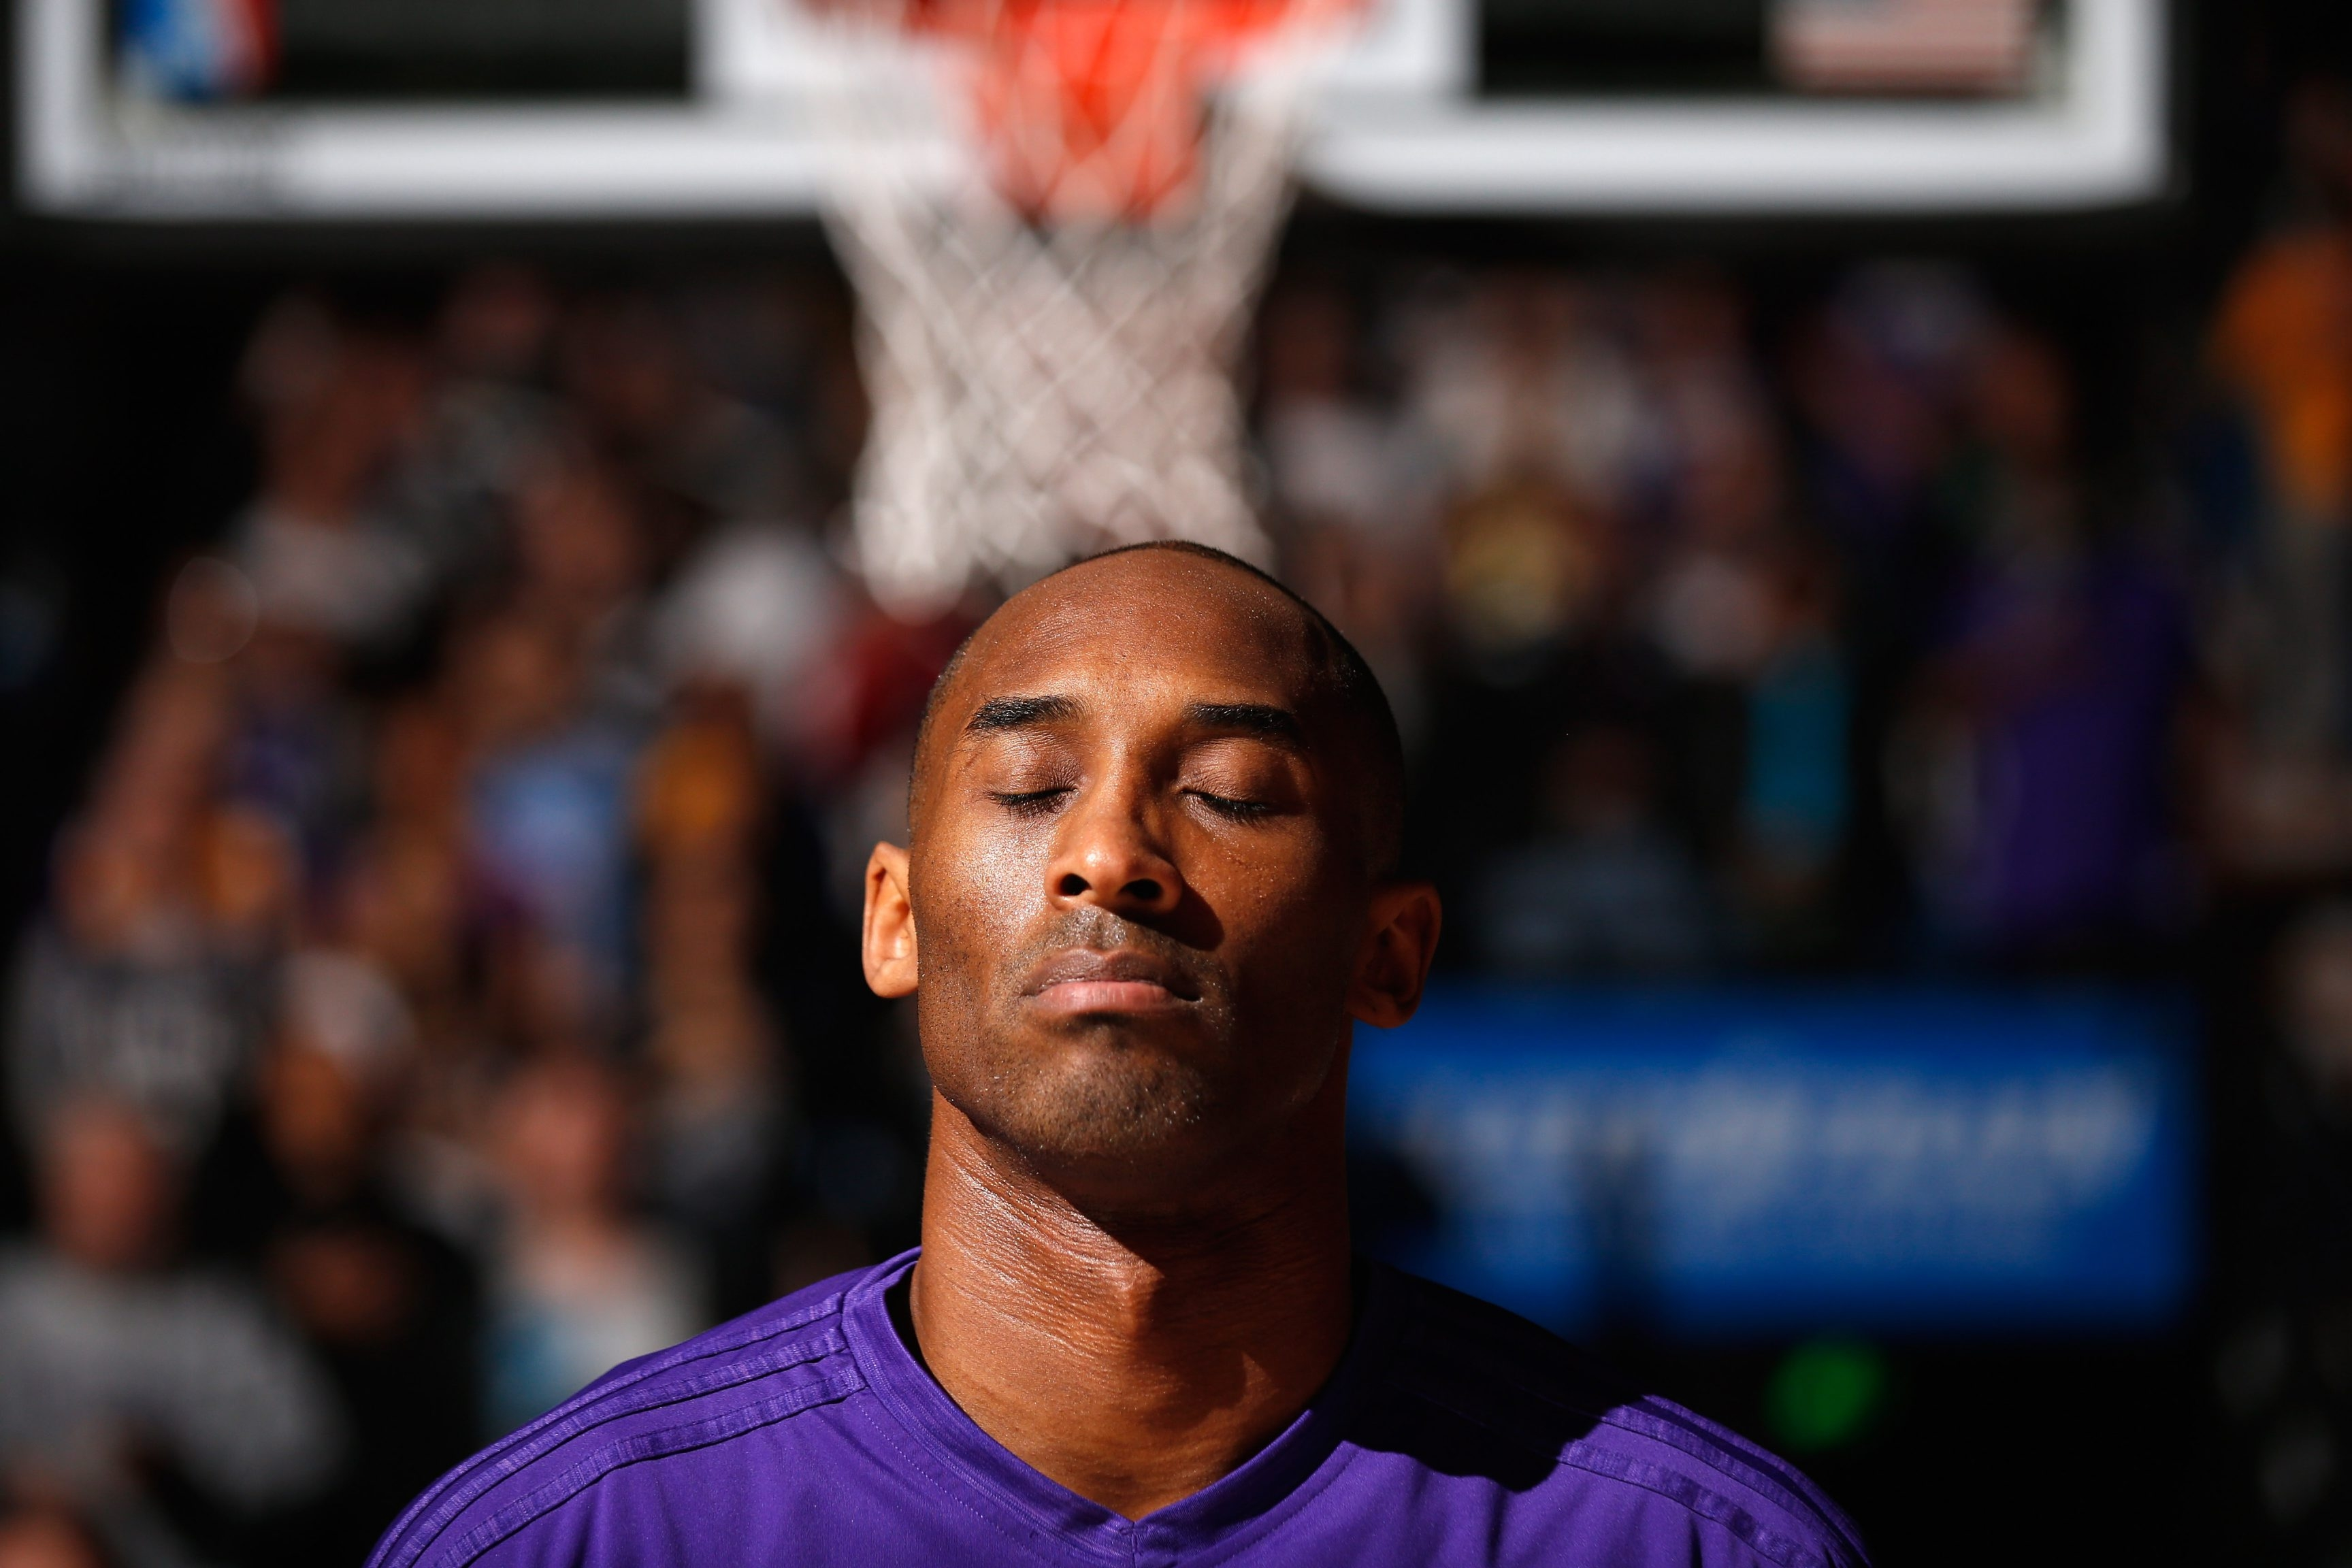 SACRAMENTO, CA - JANUARY 07:  Kobe Bryant #24 of the Los Angeles Lakers stands for the National Anthem before their game against the Sacramento Kings at Sleep Train Arena on January 7, 2016 in Sacramento, California.  NOTE TO USER: User expressly acknowledges and agrees that, by downloading and or using this photograph, User is consenting to the terms and conditions of the Getty Images License Agreement.  (Photo by Ezra Shaw/Getty Images)